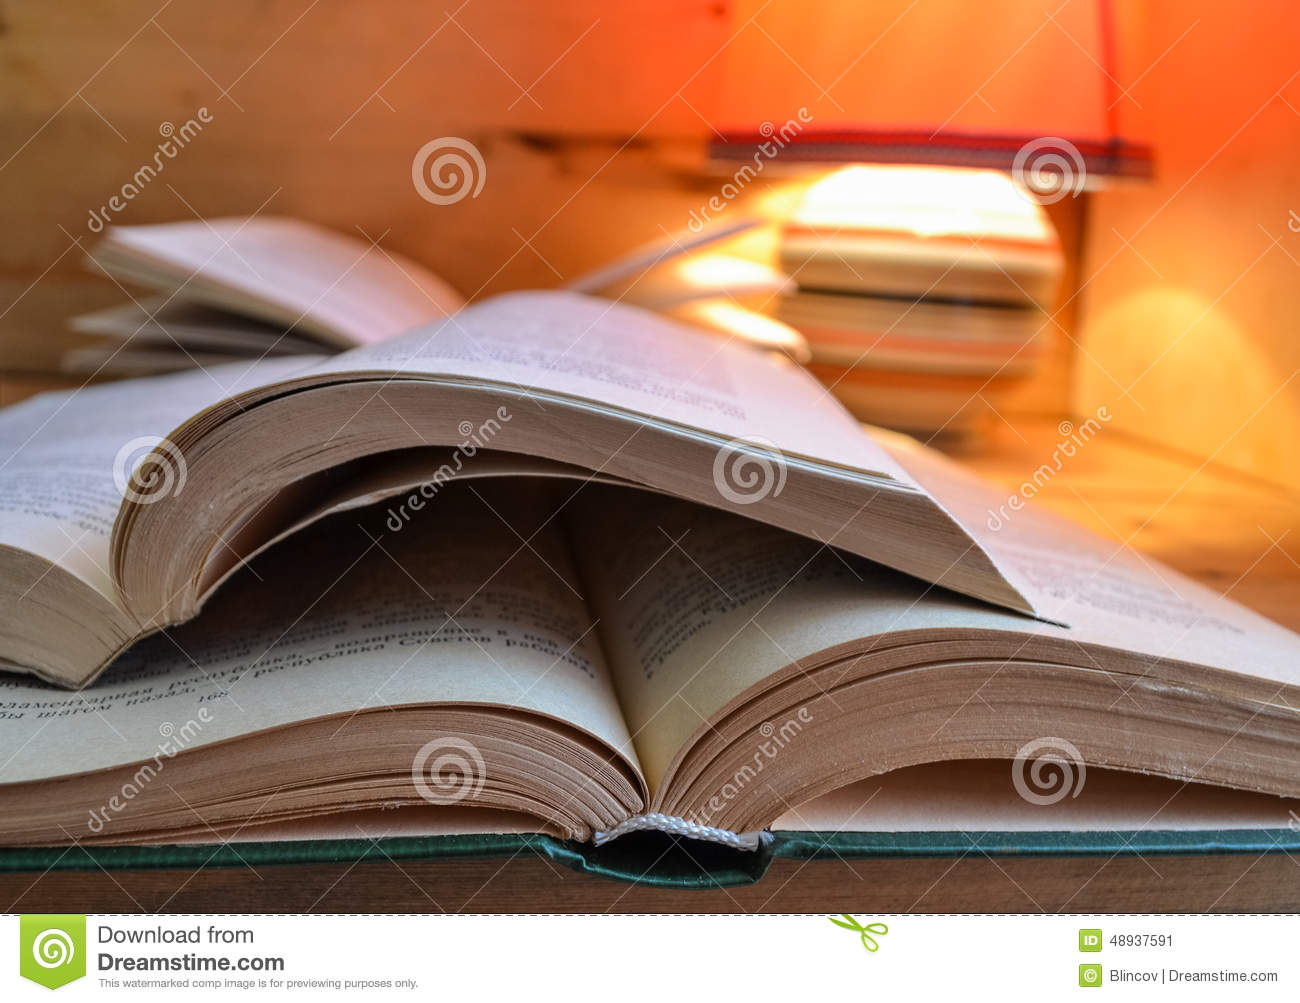 Book Books Lamp Open Paper Red Stack Table